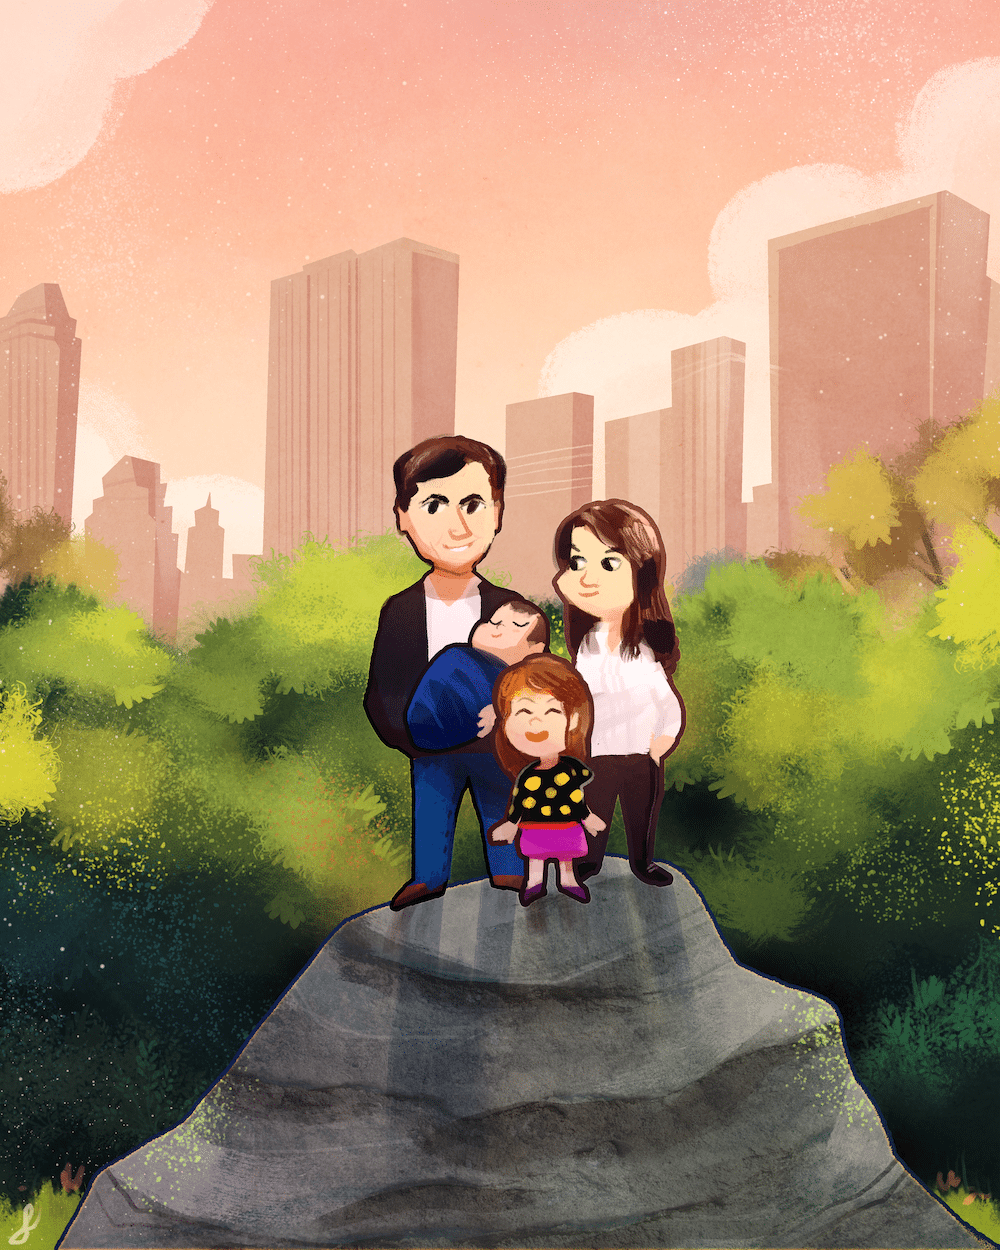 The NYC Family by Gabriel